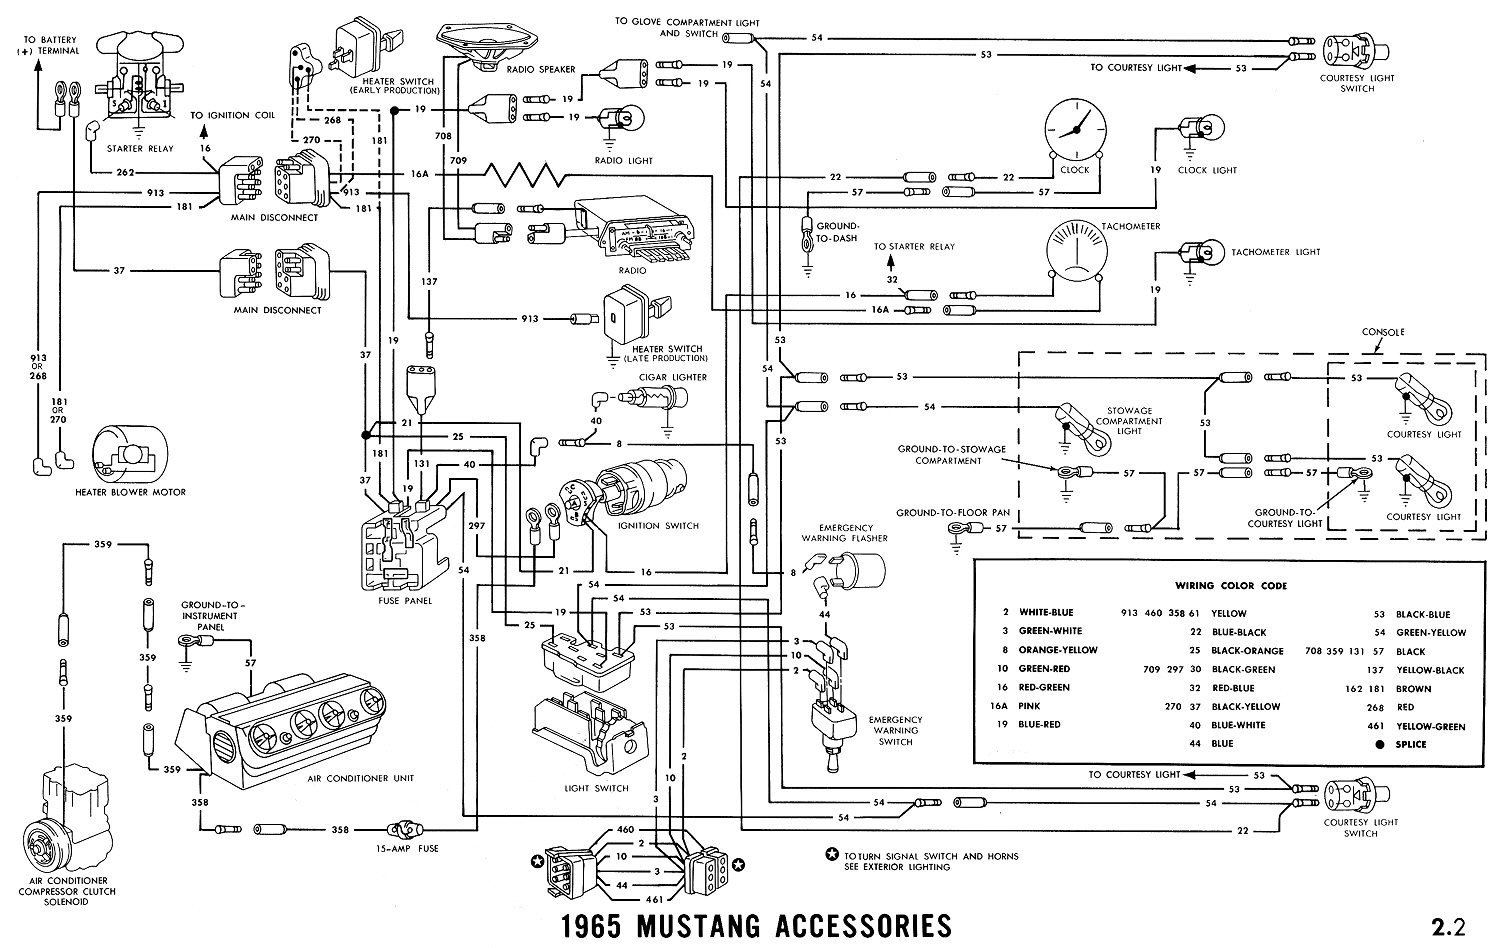 1965i 1965 mustang wiring diagrams average joe restoration mustang wiring harness diagram at crackthecode.co